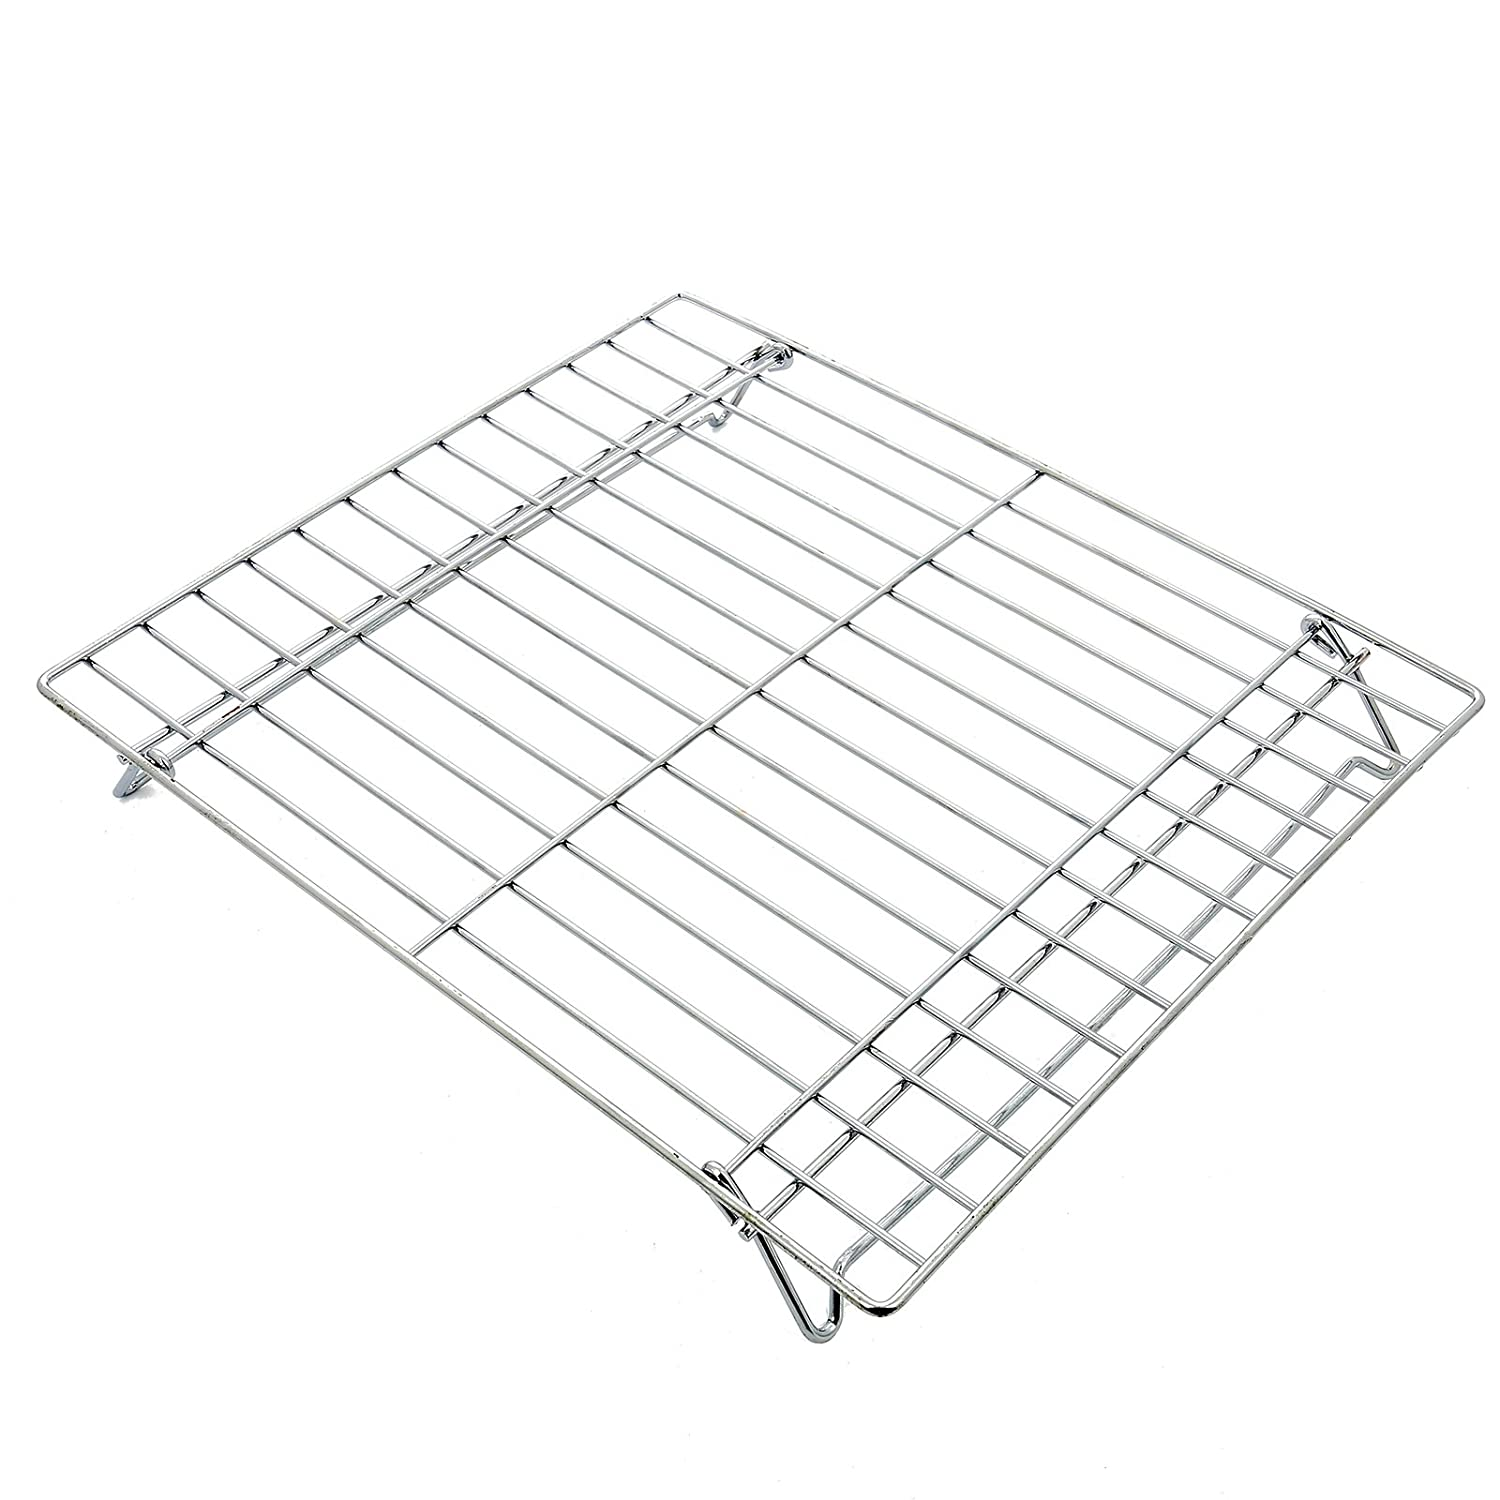 Qualtex Universal Folding Base Oven Cooker Shelf Rack Grill Tray 380mm x 320mm